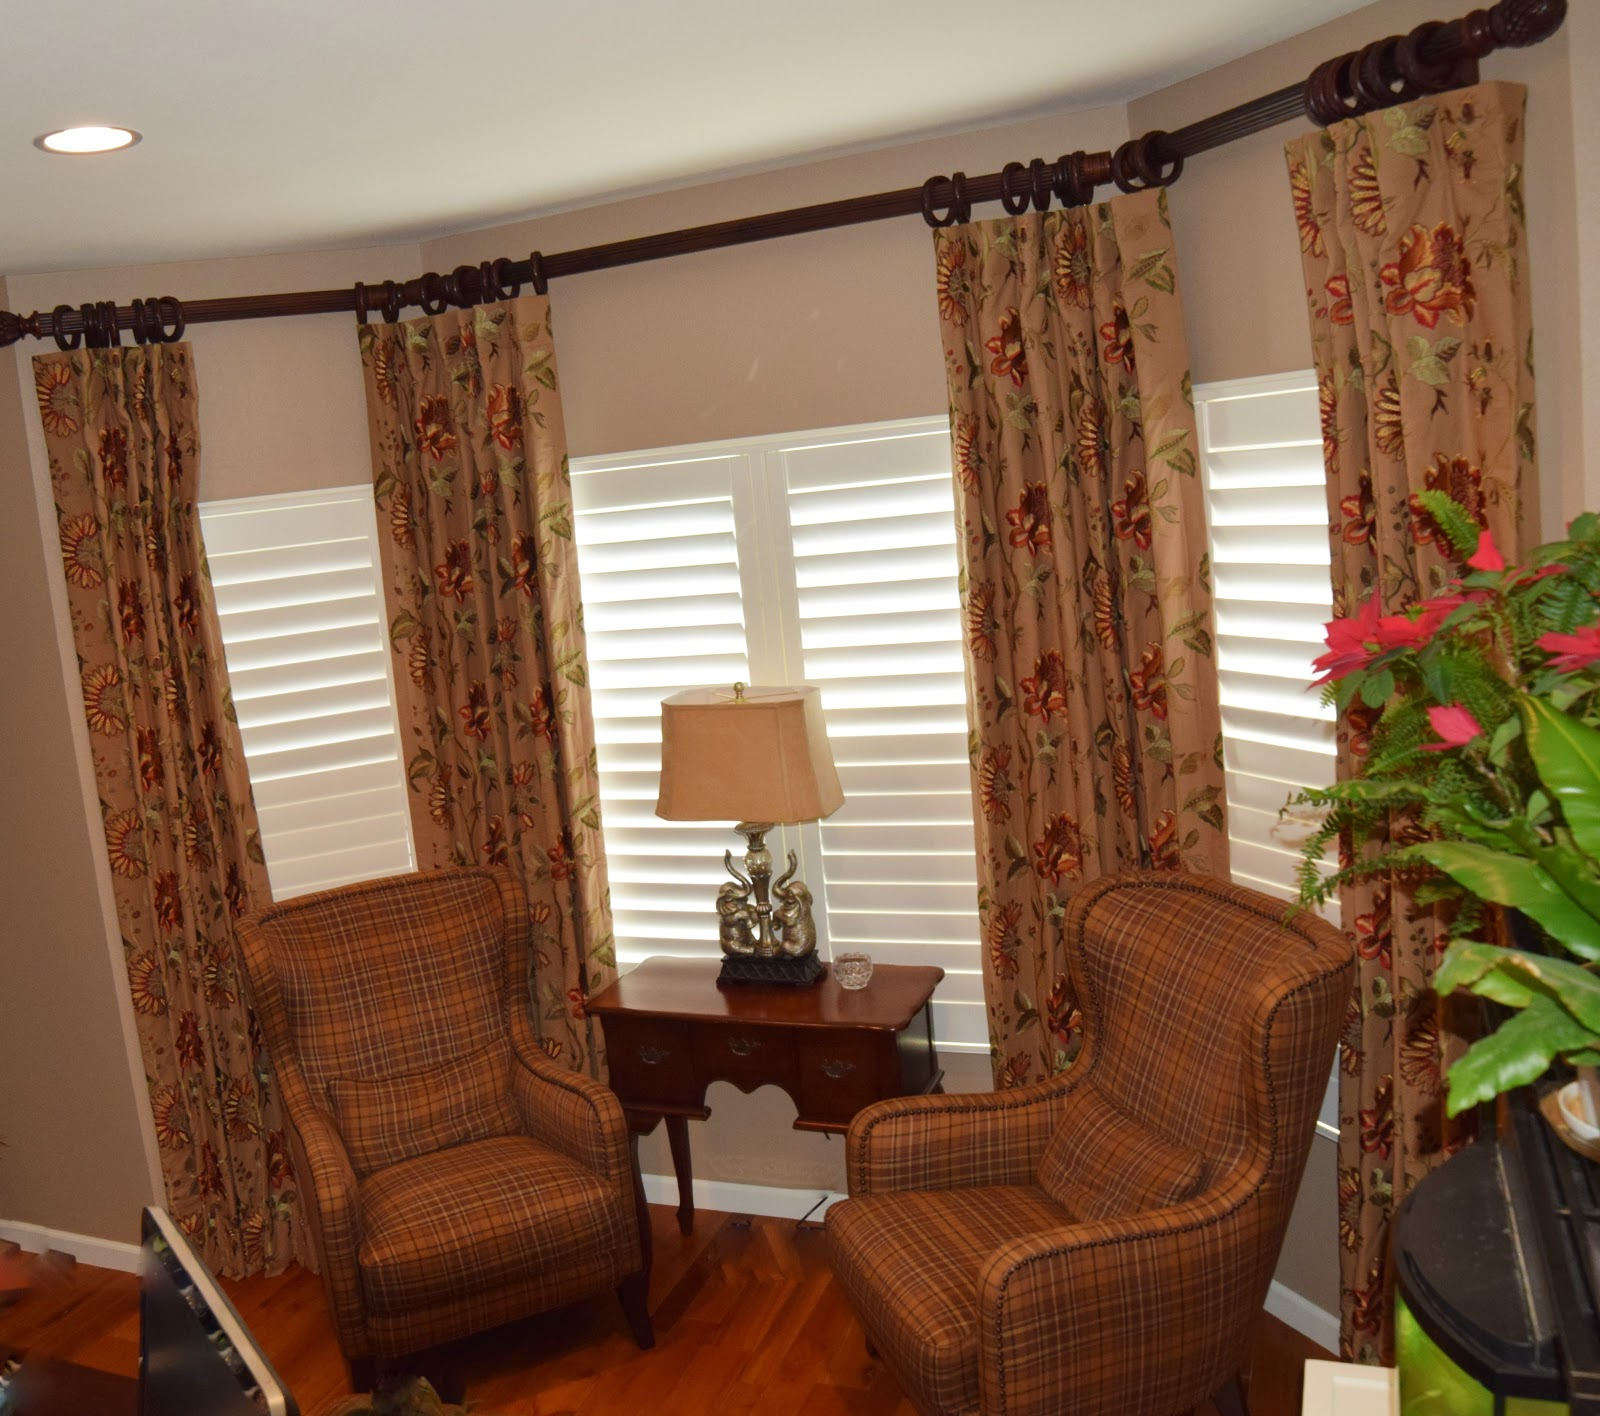 window prod decor home and qlt wid panels drapes stripe by hei curtain curtains jojo orange collection treatments gray sweet p designs hardware